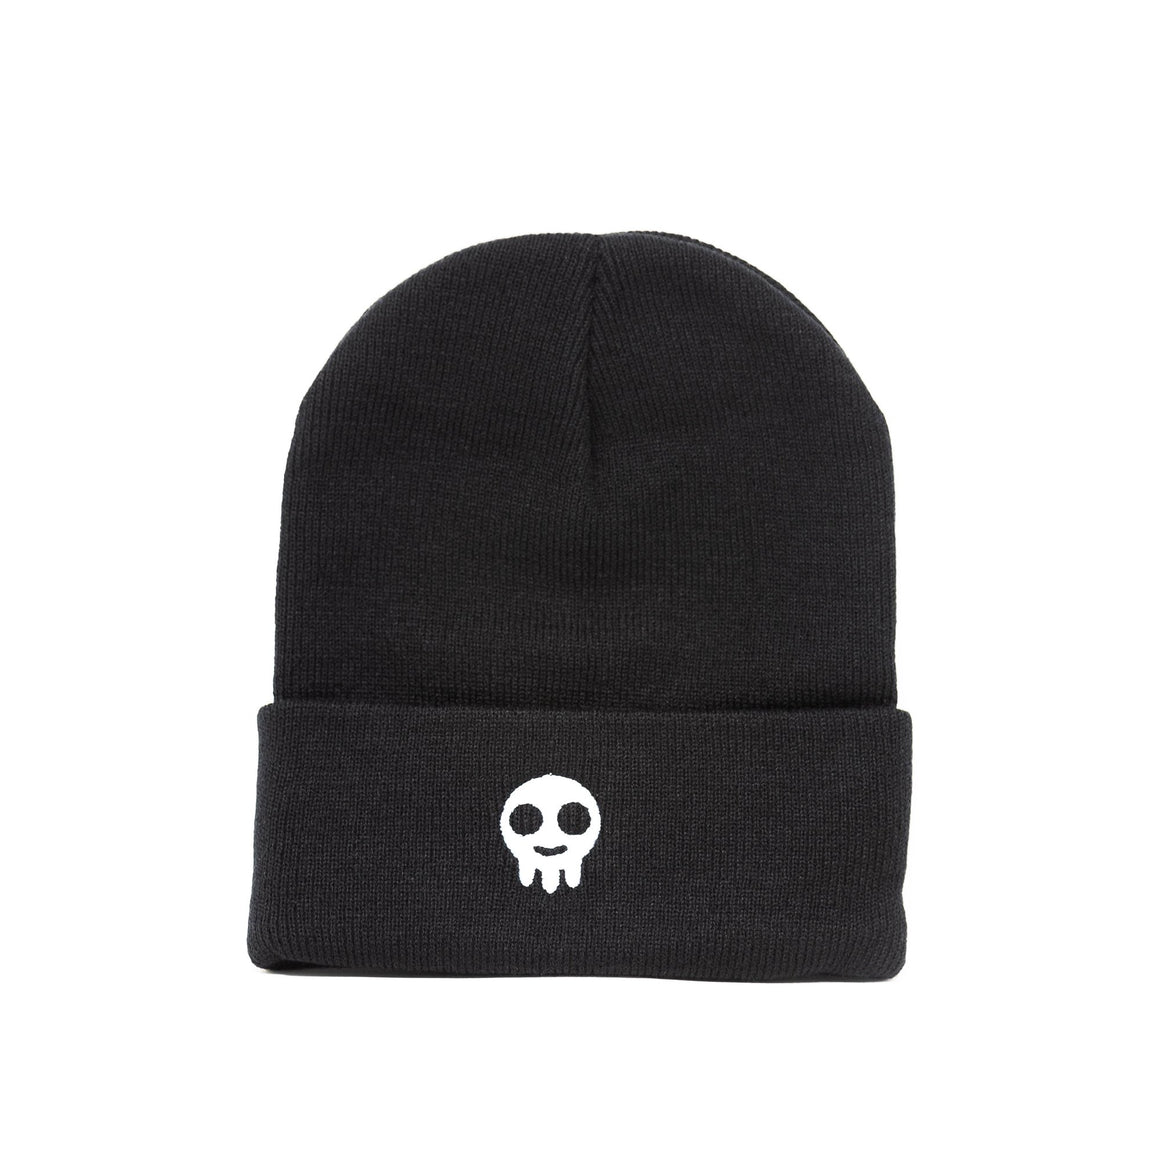 Flippin Packs Beanie (Black)